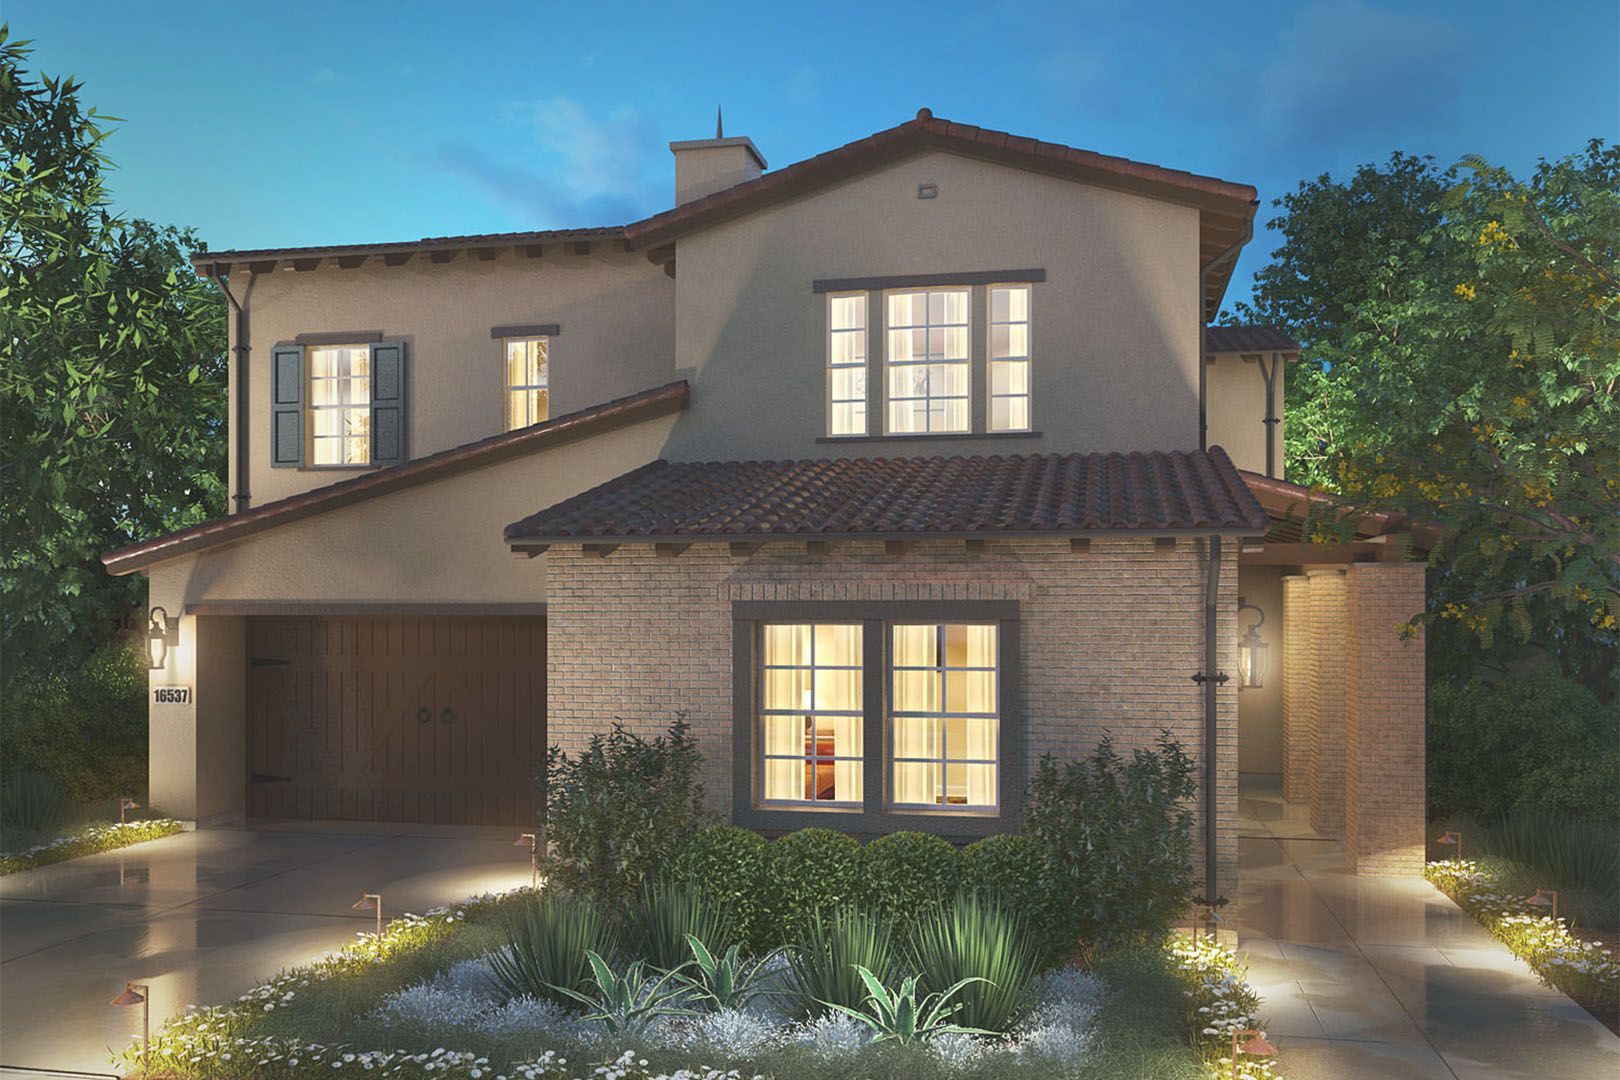 Single Family for Sale at Aubergine At Esencia - Residence 2 4 Cadencia Street Ladera Ranch, California 92694 United States